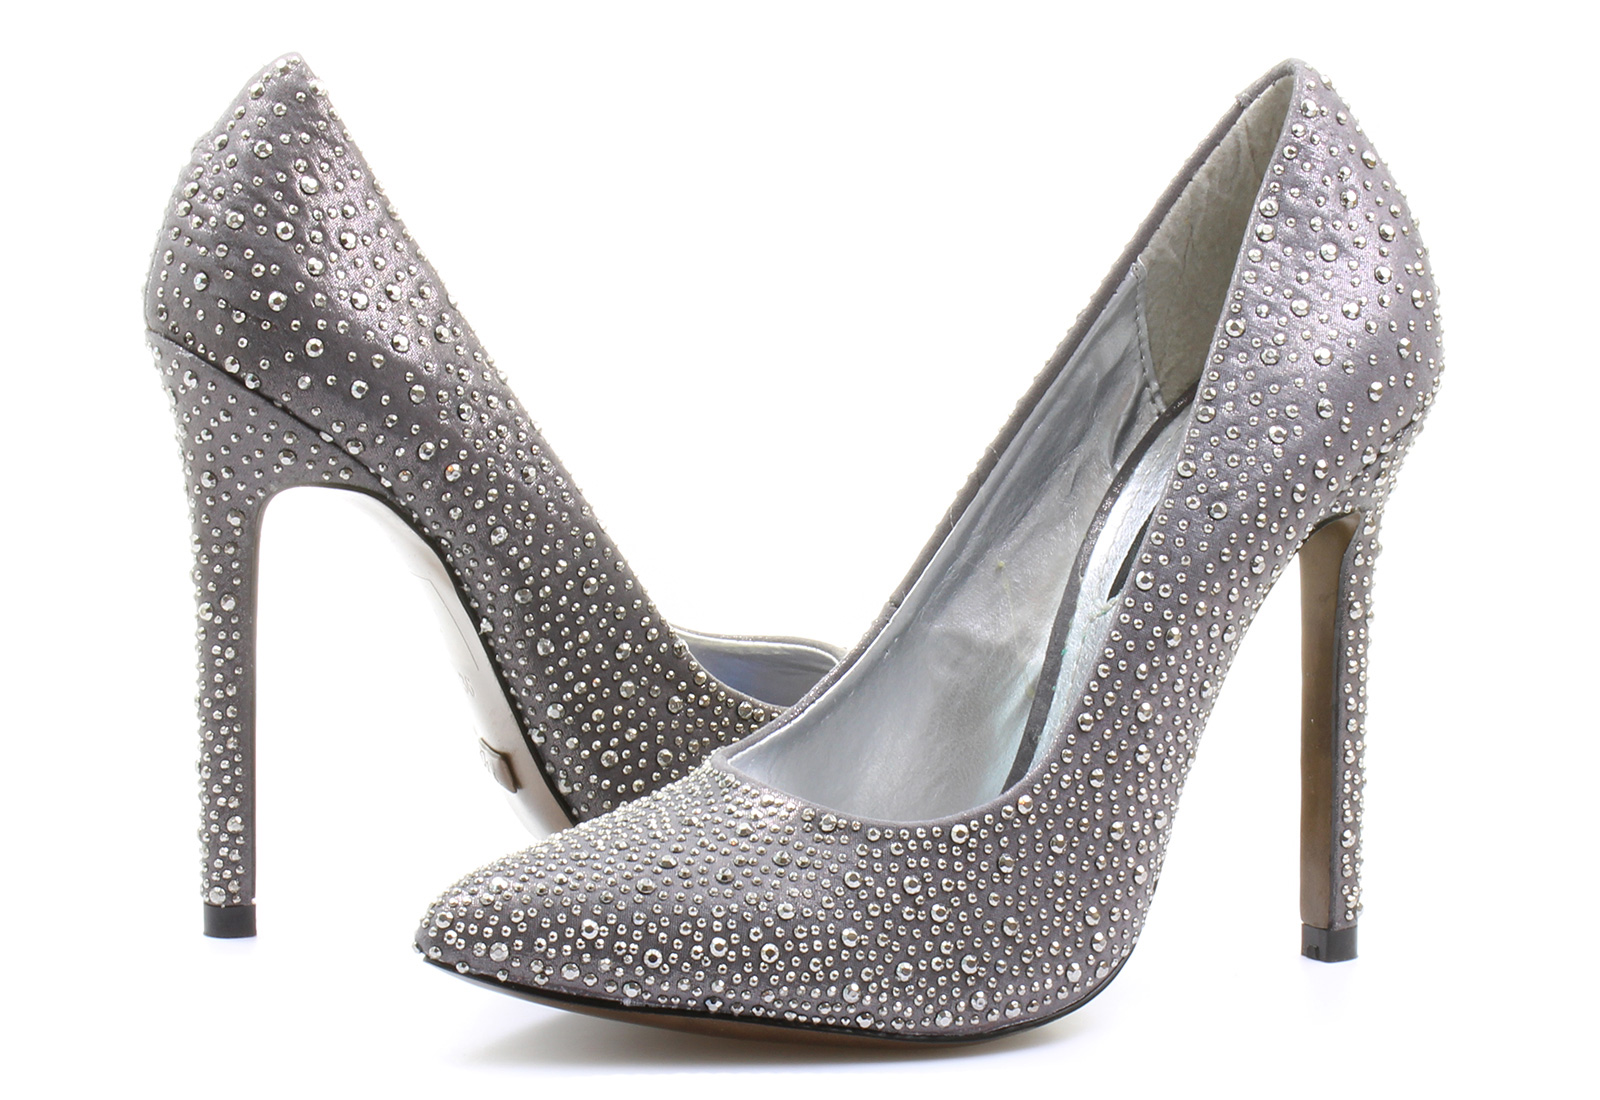 Black Diamond High Heel Shoes